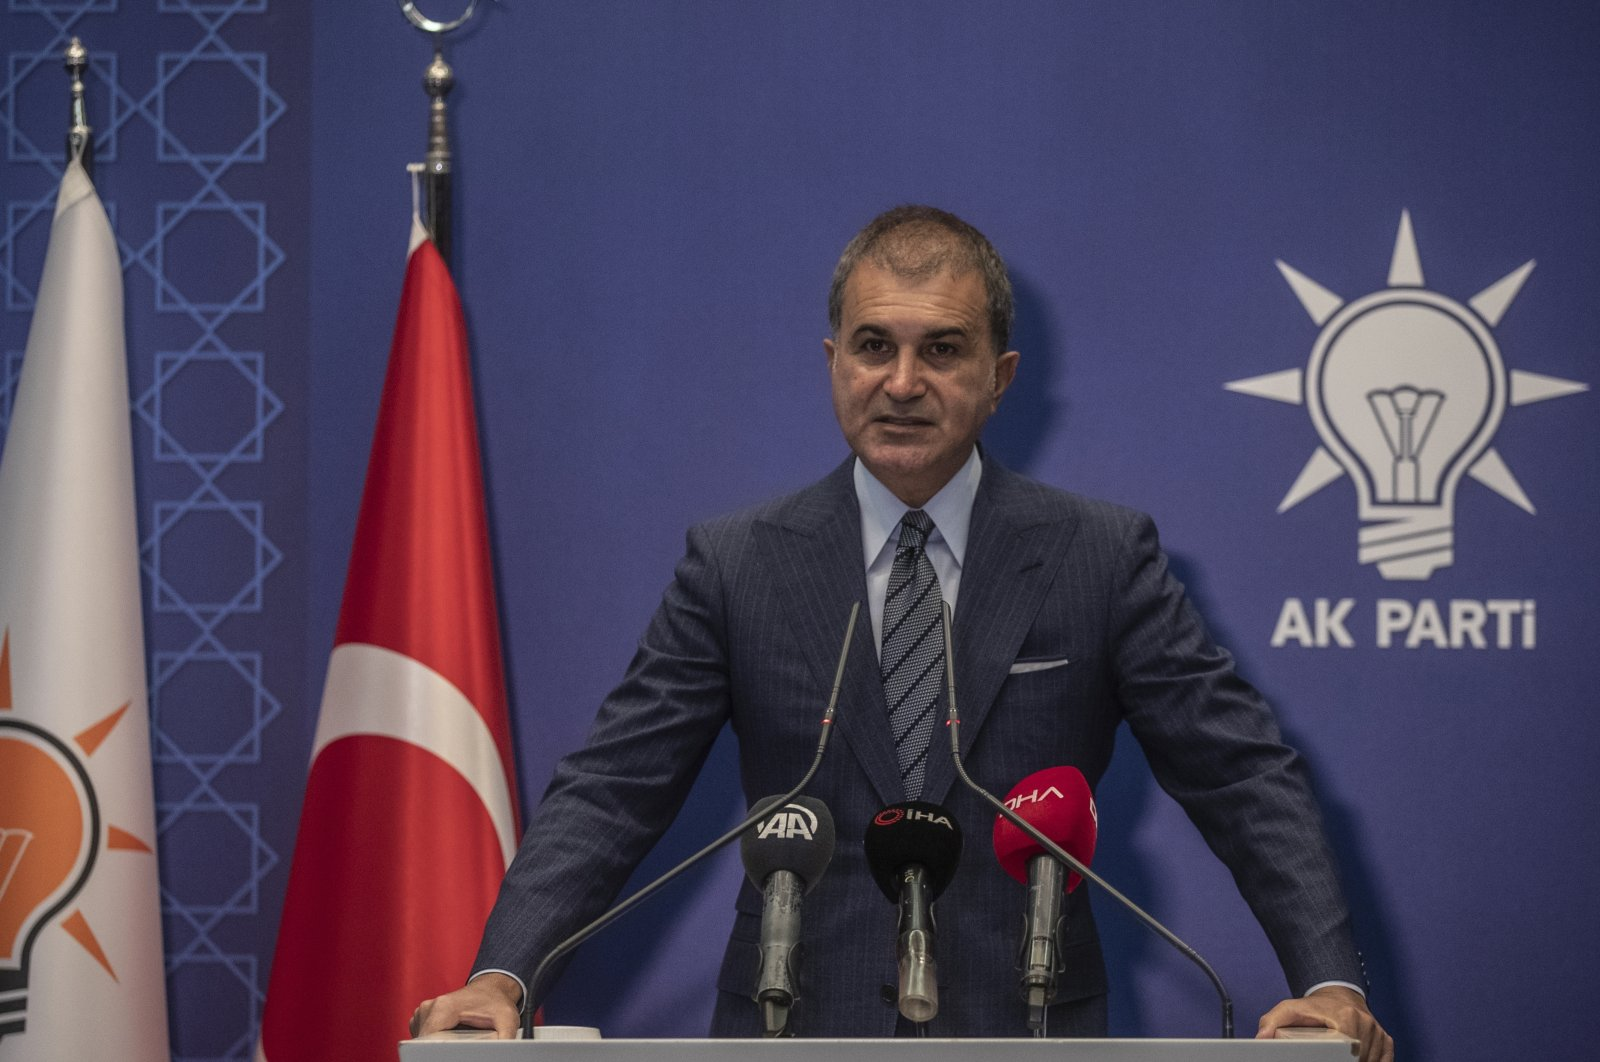 Justice and Development Party (AK Party) spokesperson Ömer Çelik speaks to reporters following a Central Decision and Executive Board meeting at the party headquarters in the capital Ankara, Turkey, Oct. 13, 2020 (AA Photo)